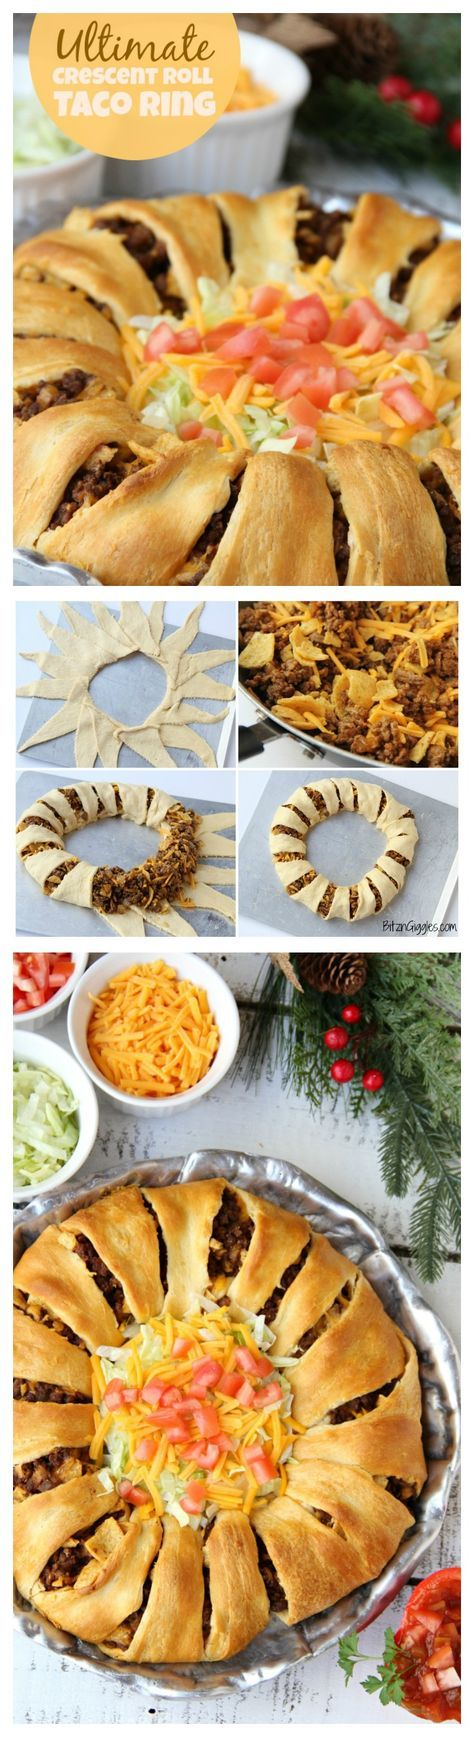 Ultimate Crescent Roll Taco Ring - This isn't just any old taco ring, it's filled with corn chips, guacamole, sour cream, cheese and tomatoes - easy and delicious, ready to serve a crowd! #ItsBakingSeason